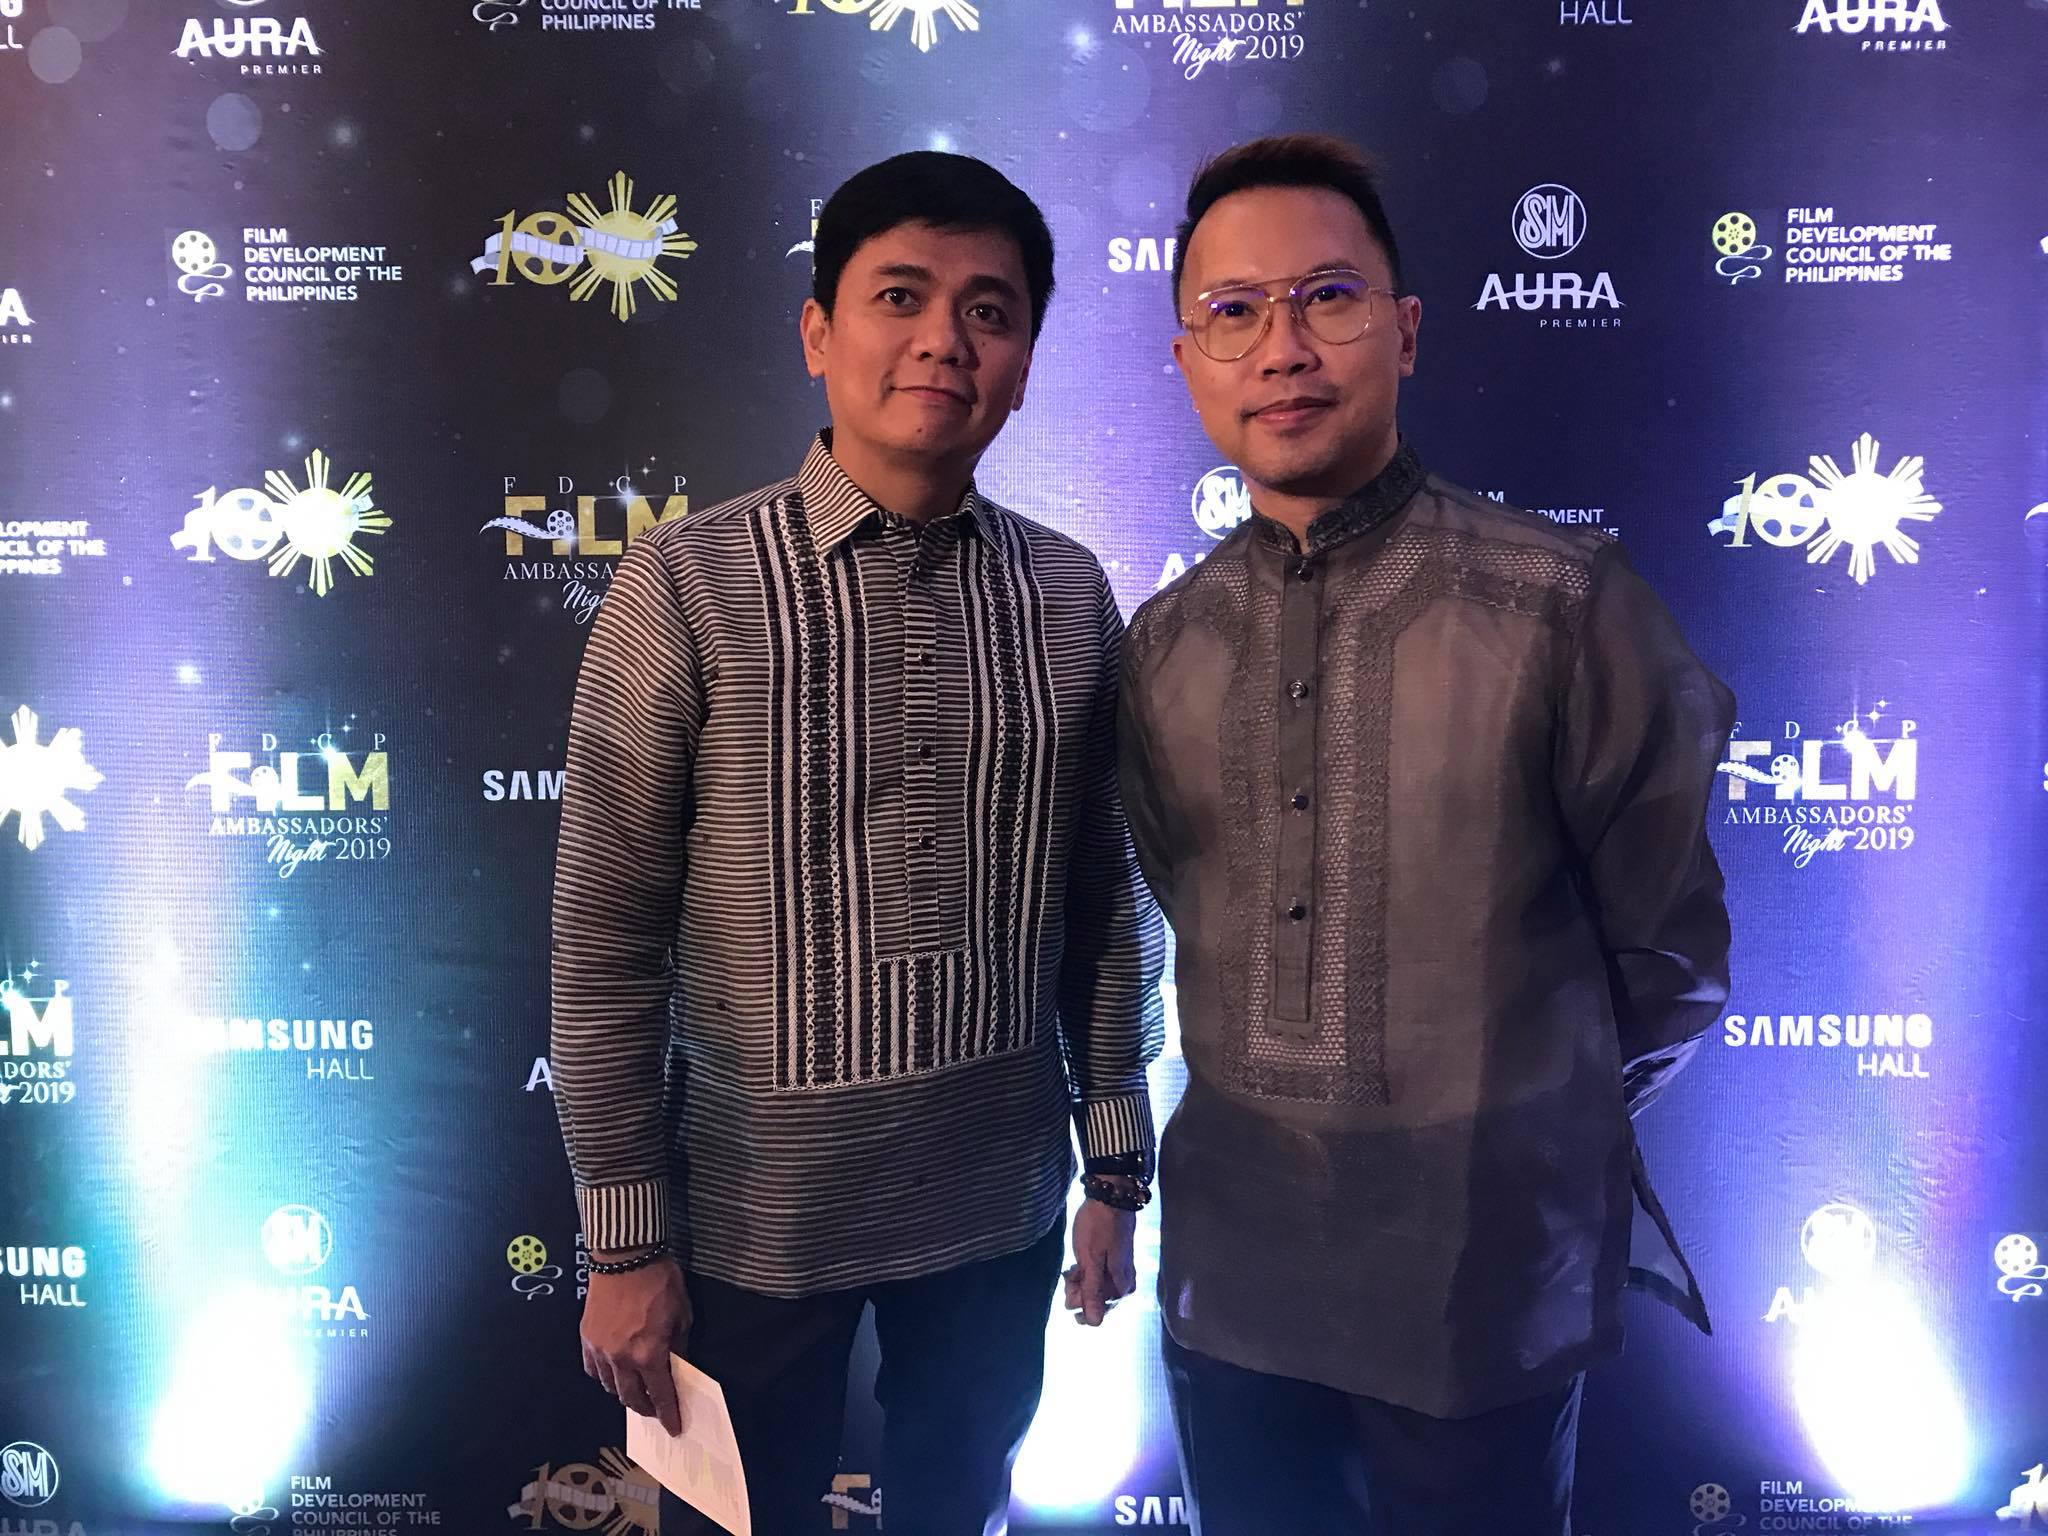 DUO. Directors and partners Jun Lana and Perci Intalan also came to the event.